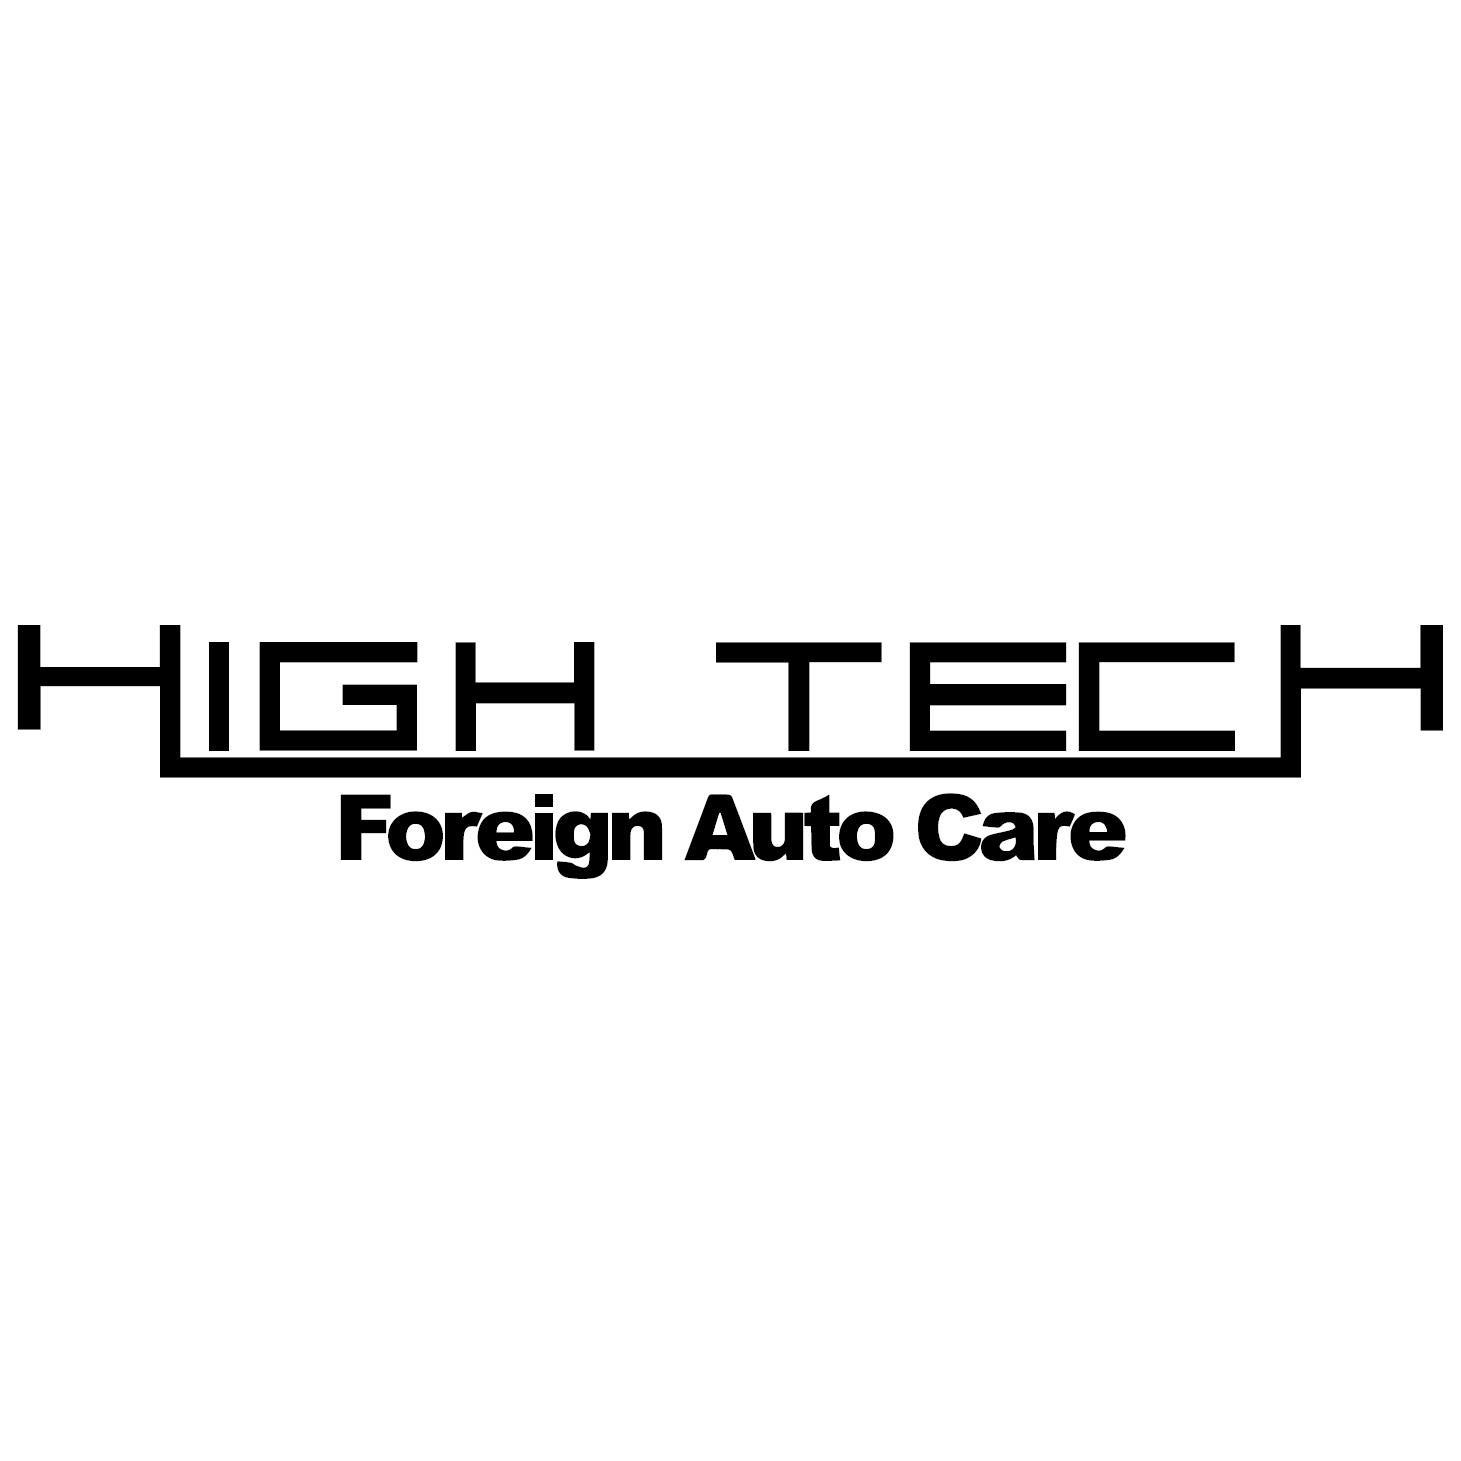 High Tech Foreign Auto Care